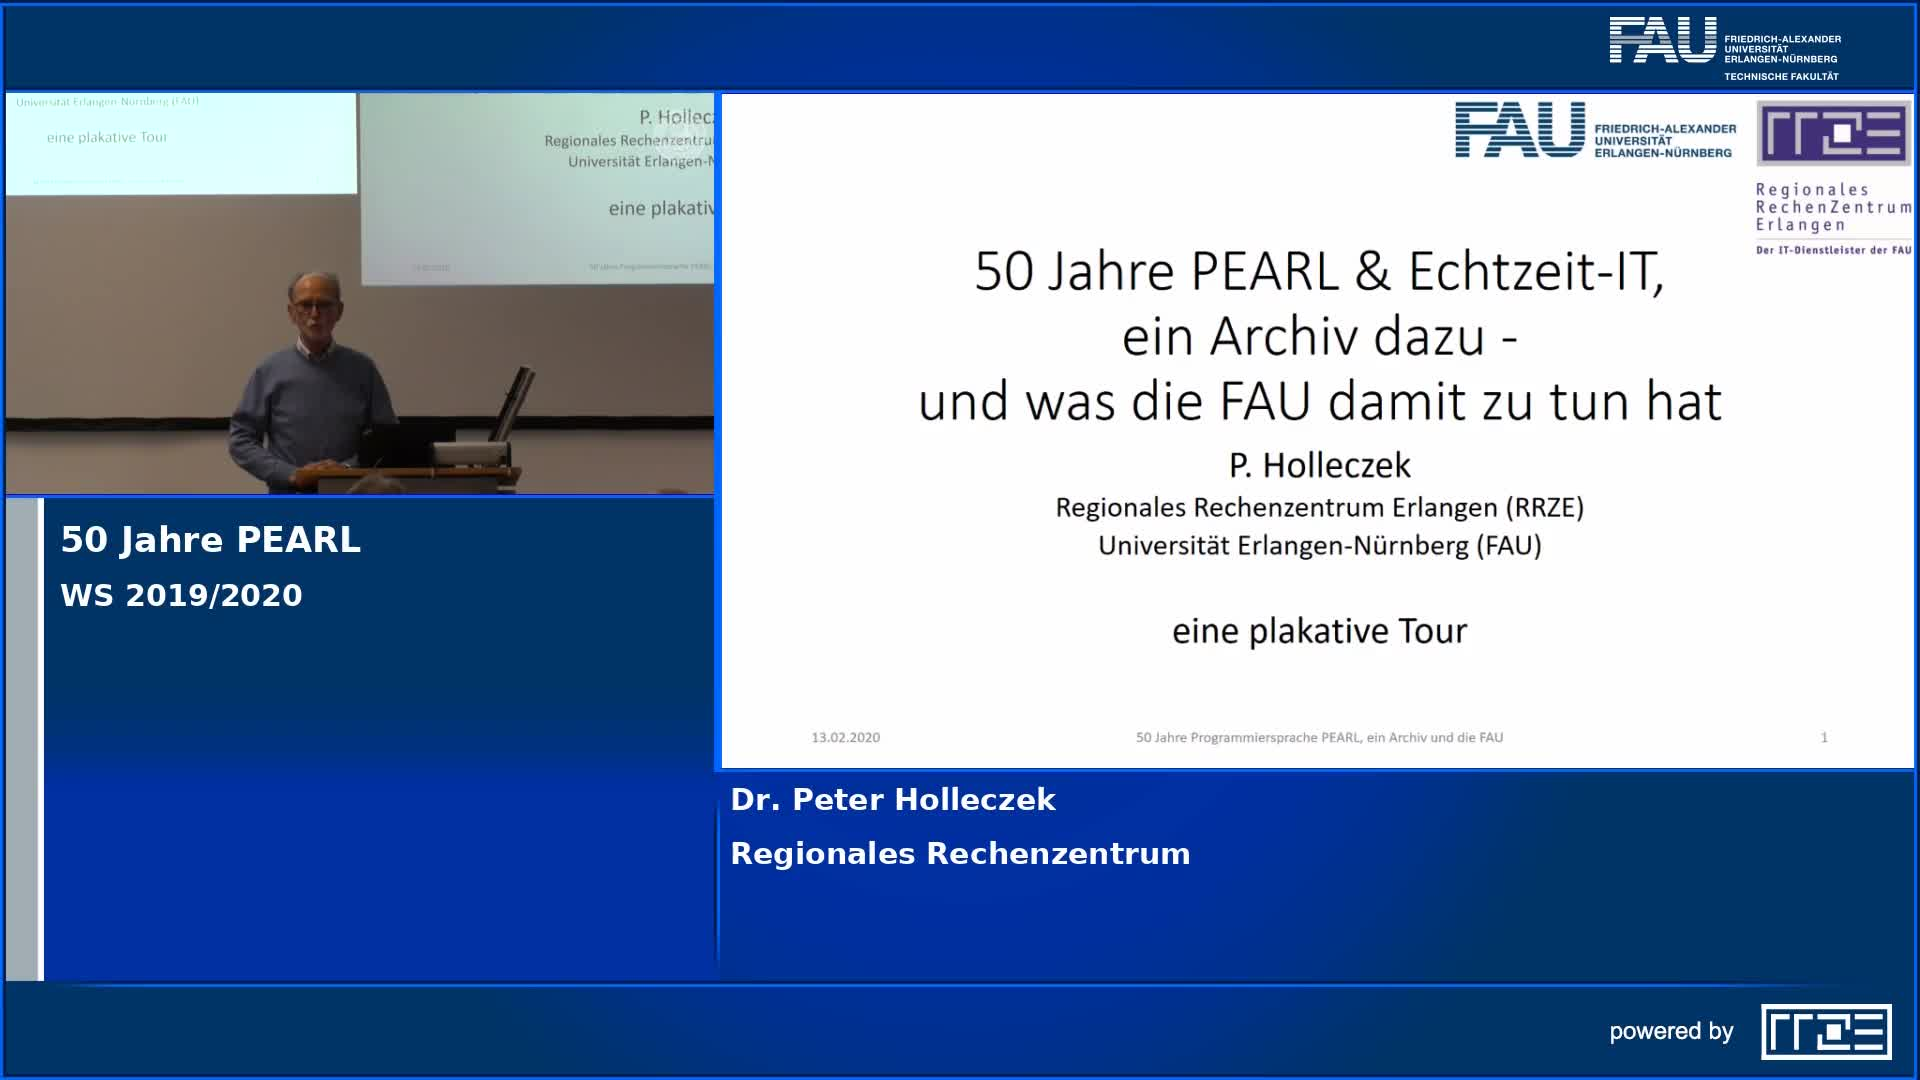 50 Jahre PEARL preview image